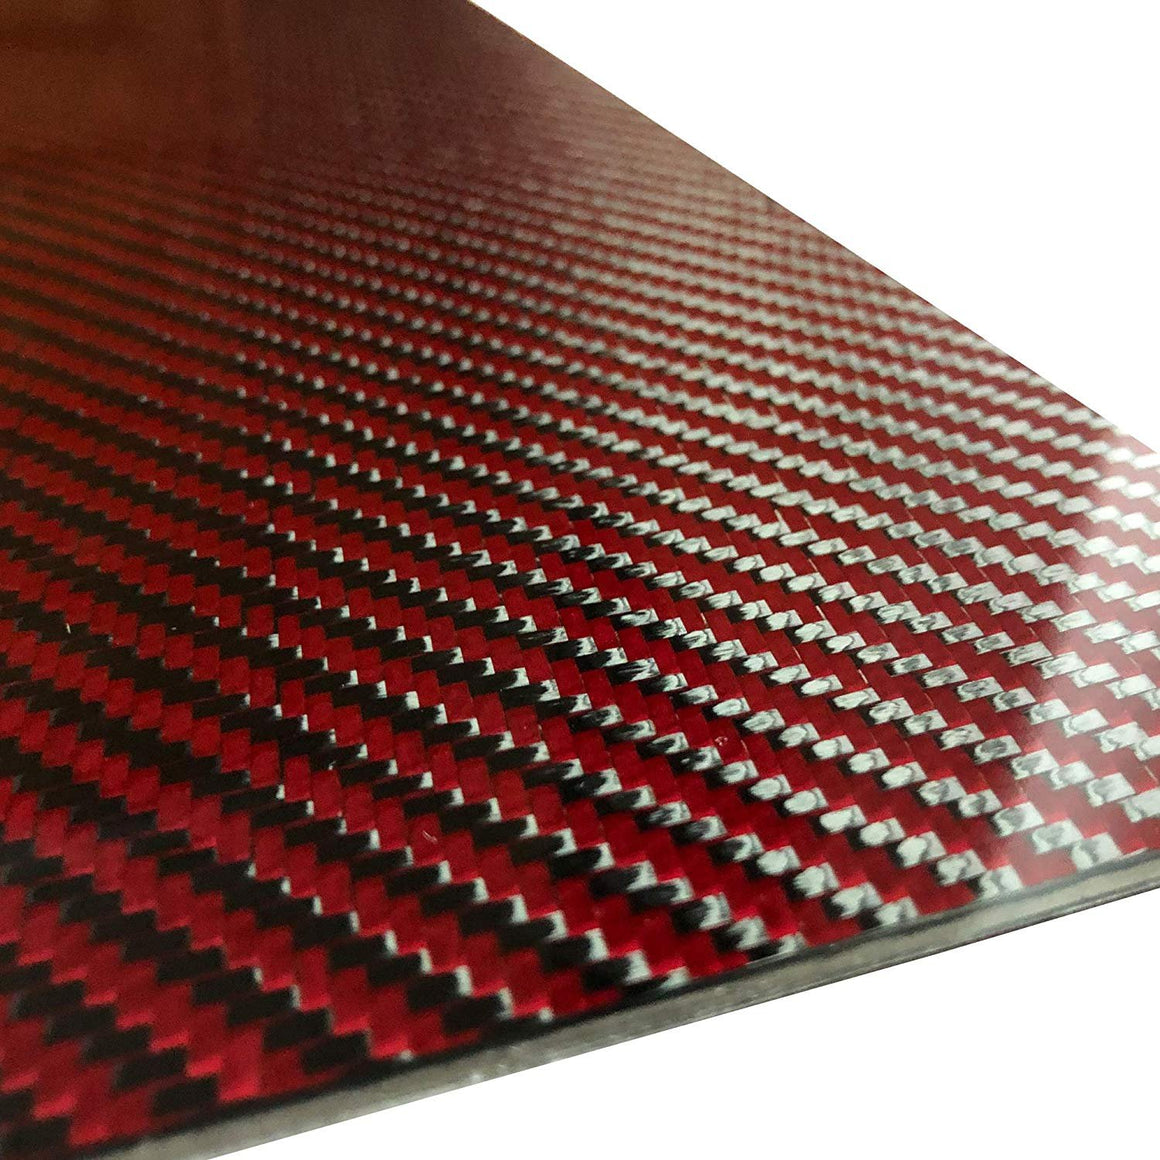 (2) Red Carbon Fiber Plate - 400mm x 500mm x 2mm Thick - 100% -3K Tow, Plain Weave -High Gloss Surface (1) Plate